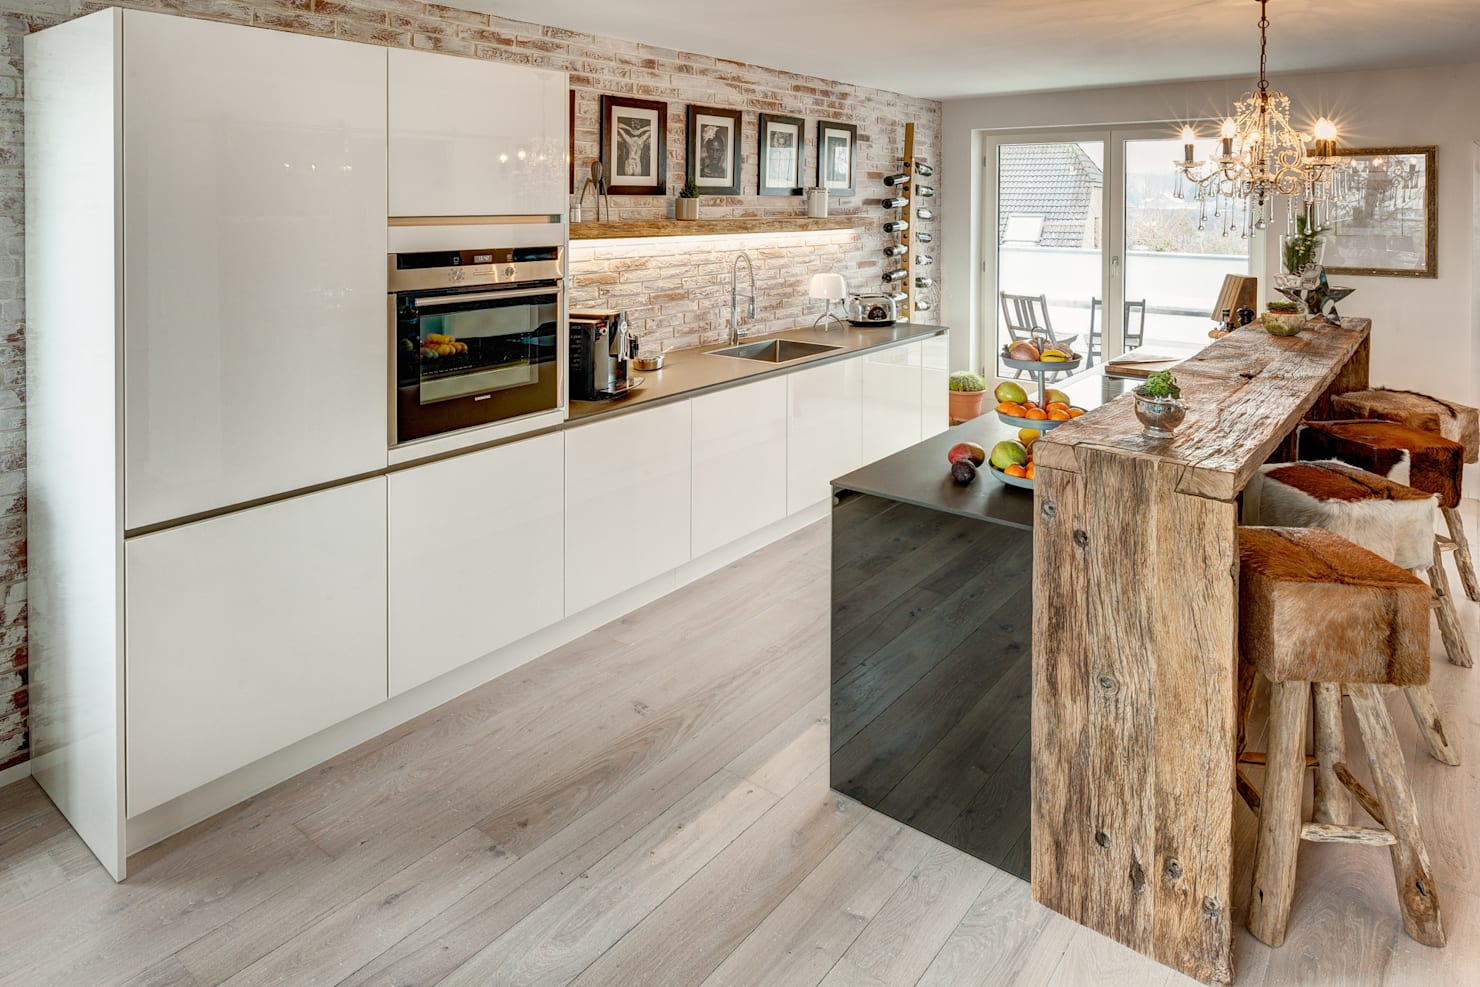 Must steal wall ideas for a smart kitchen